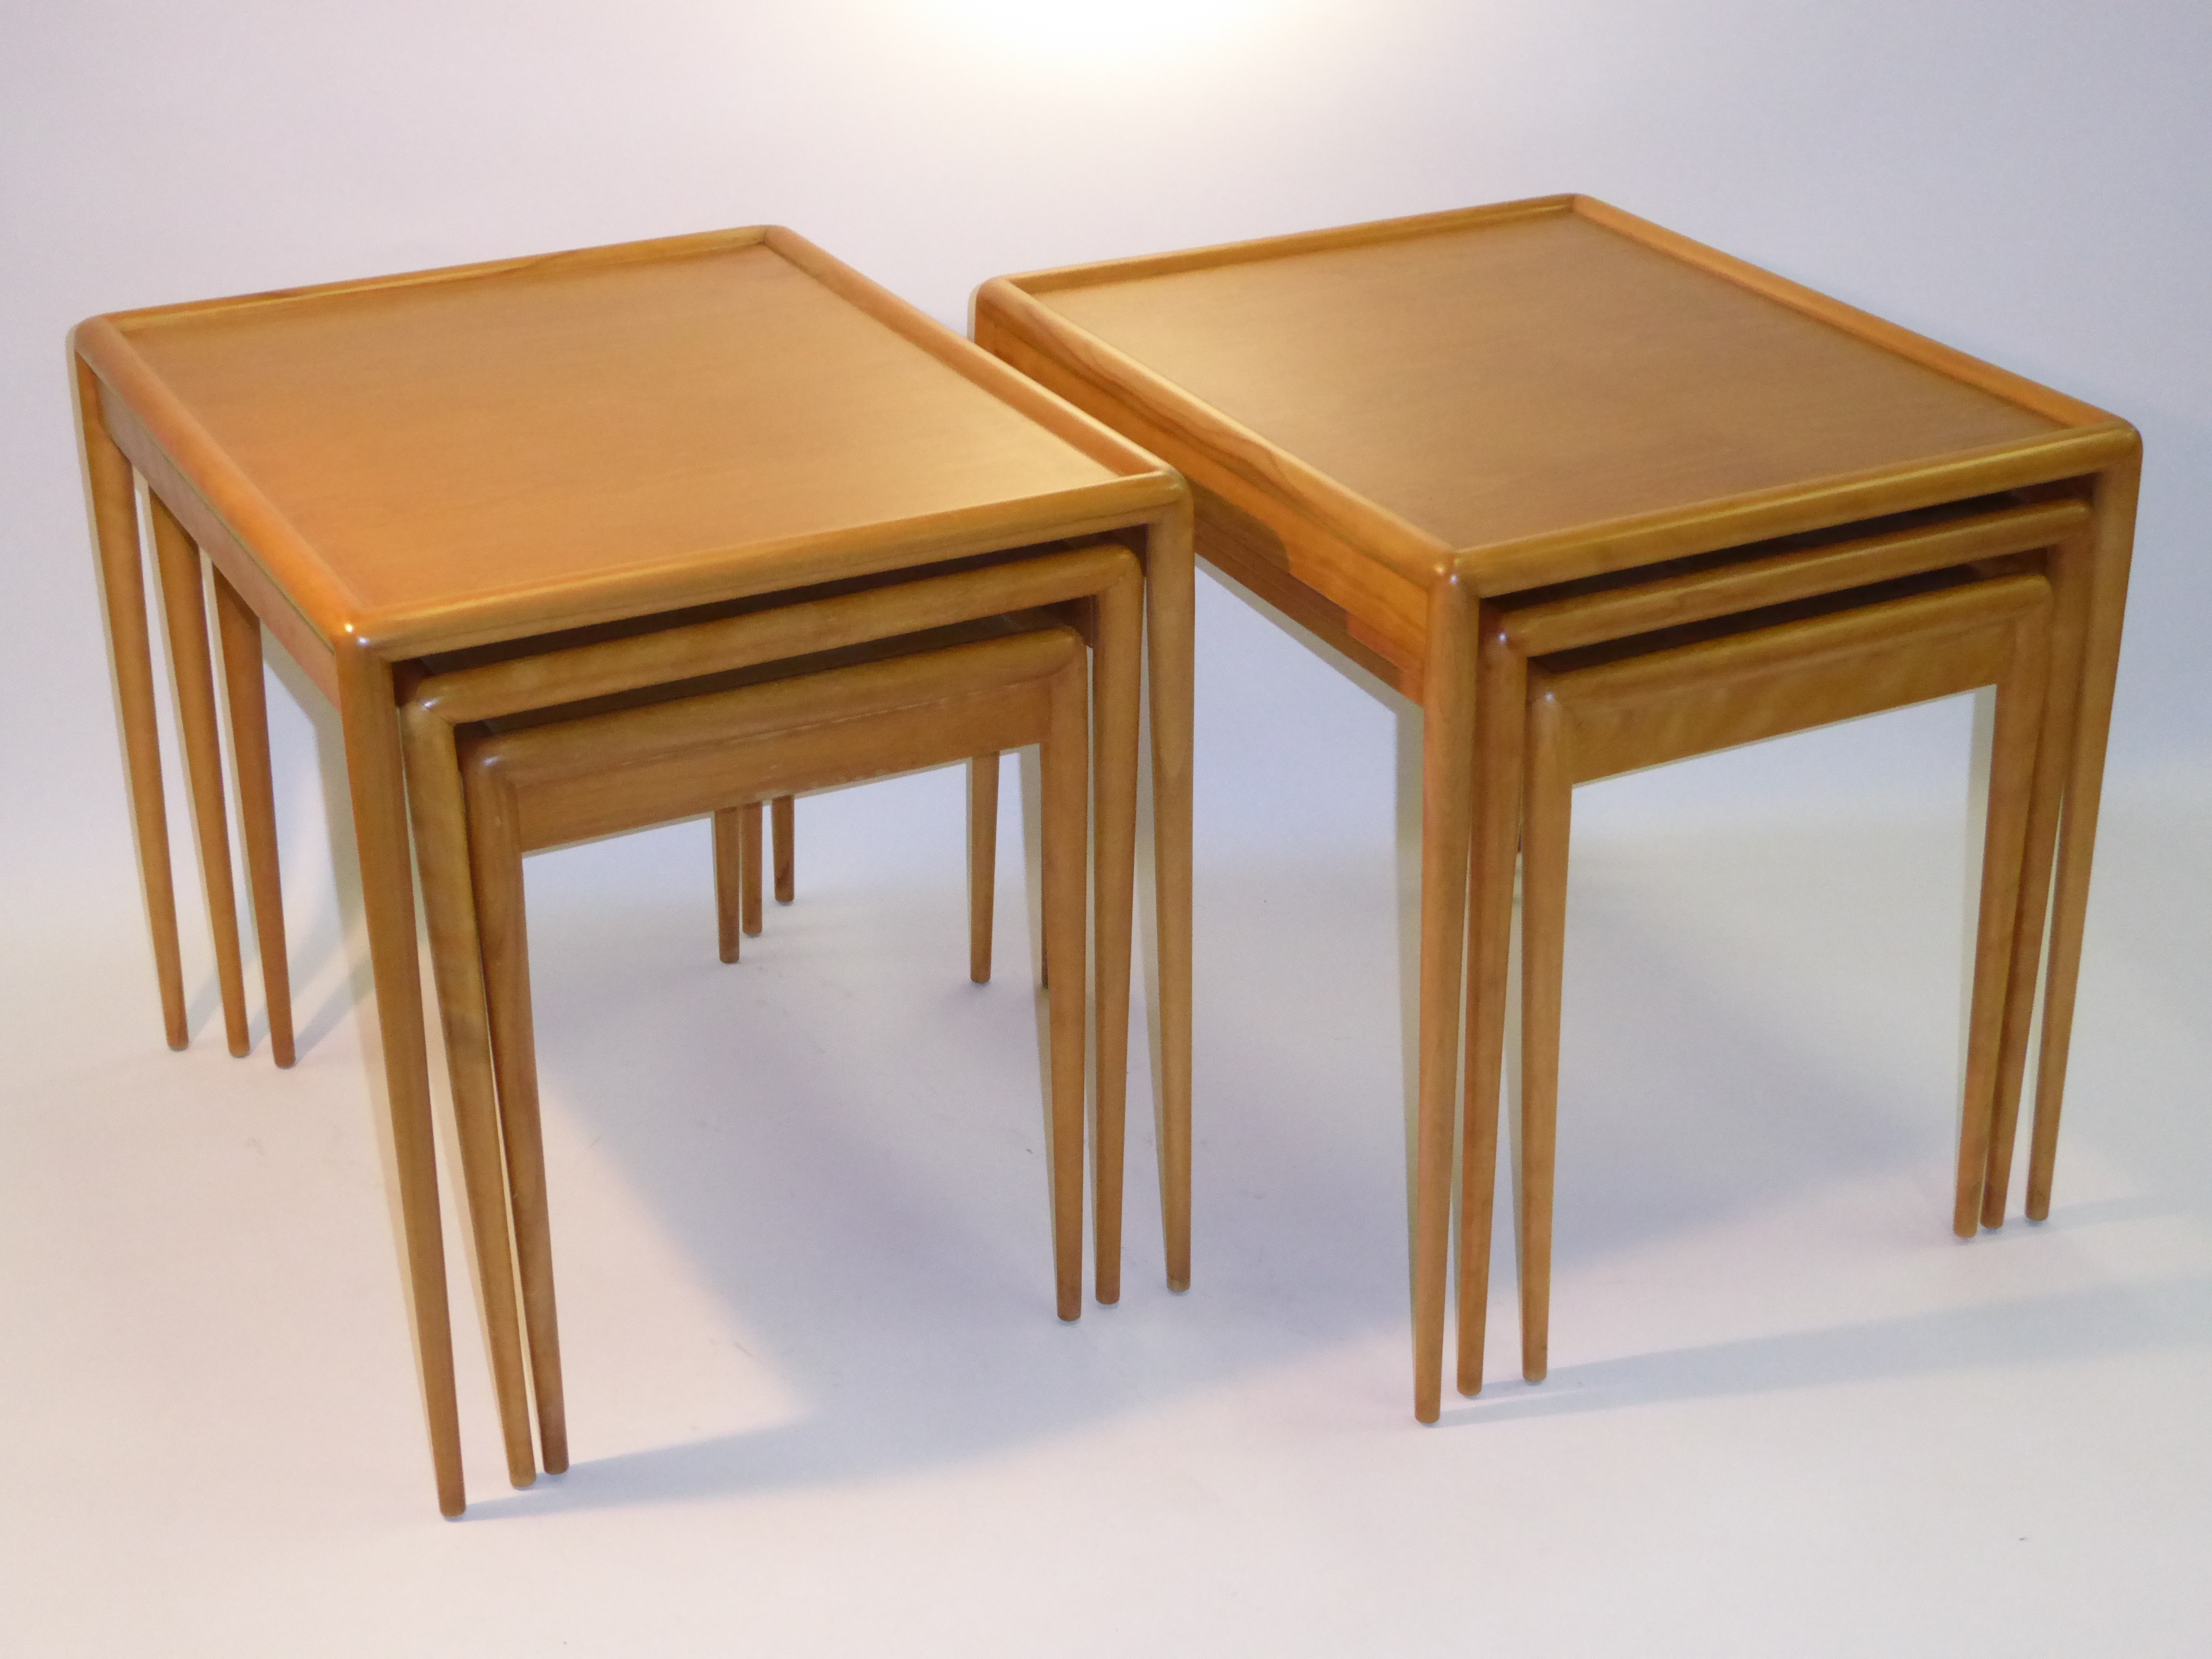 Fabulous Pair Th Robsjohn Gibbings Mid Century Modern Nesting Tables